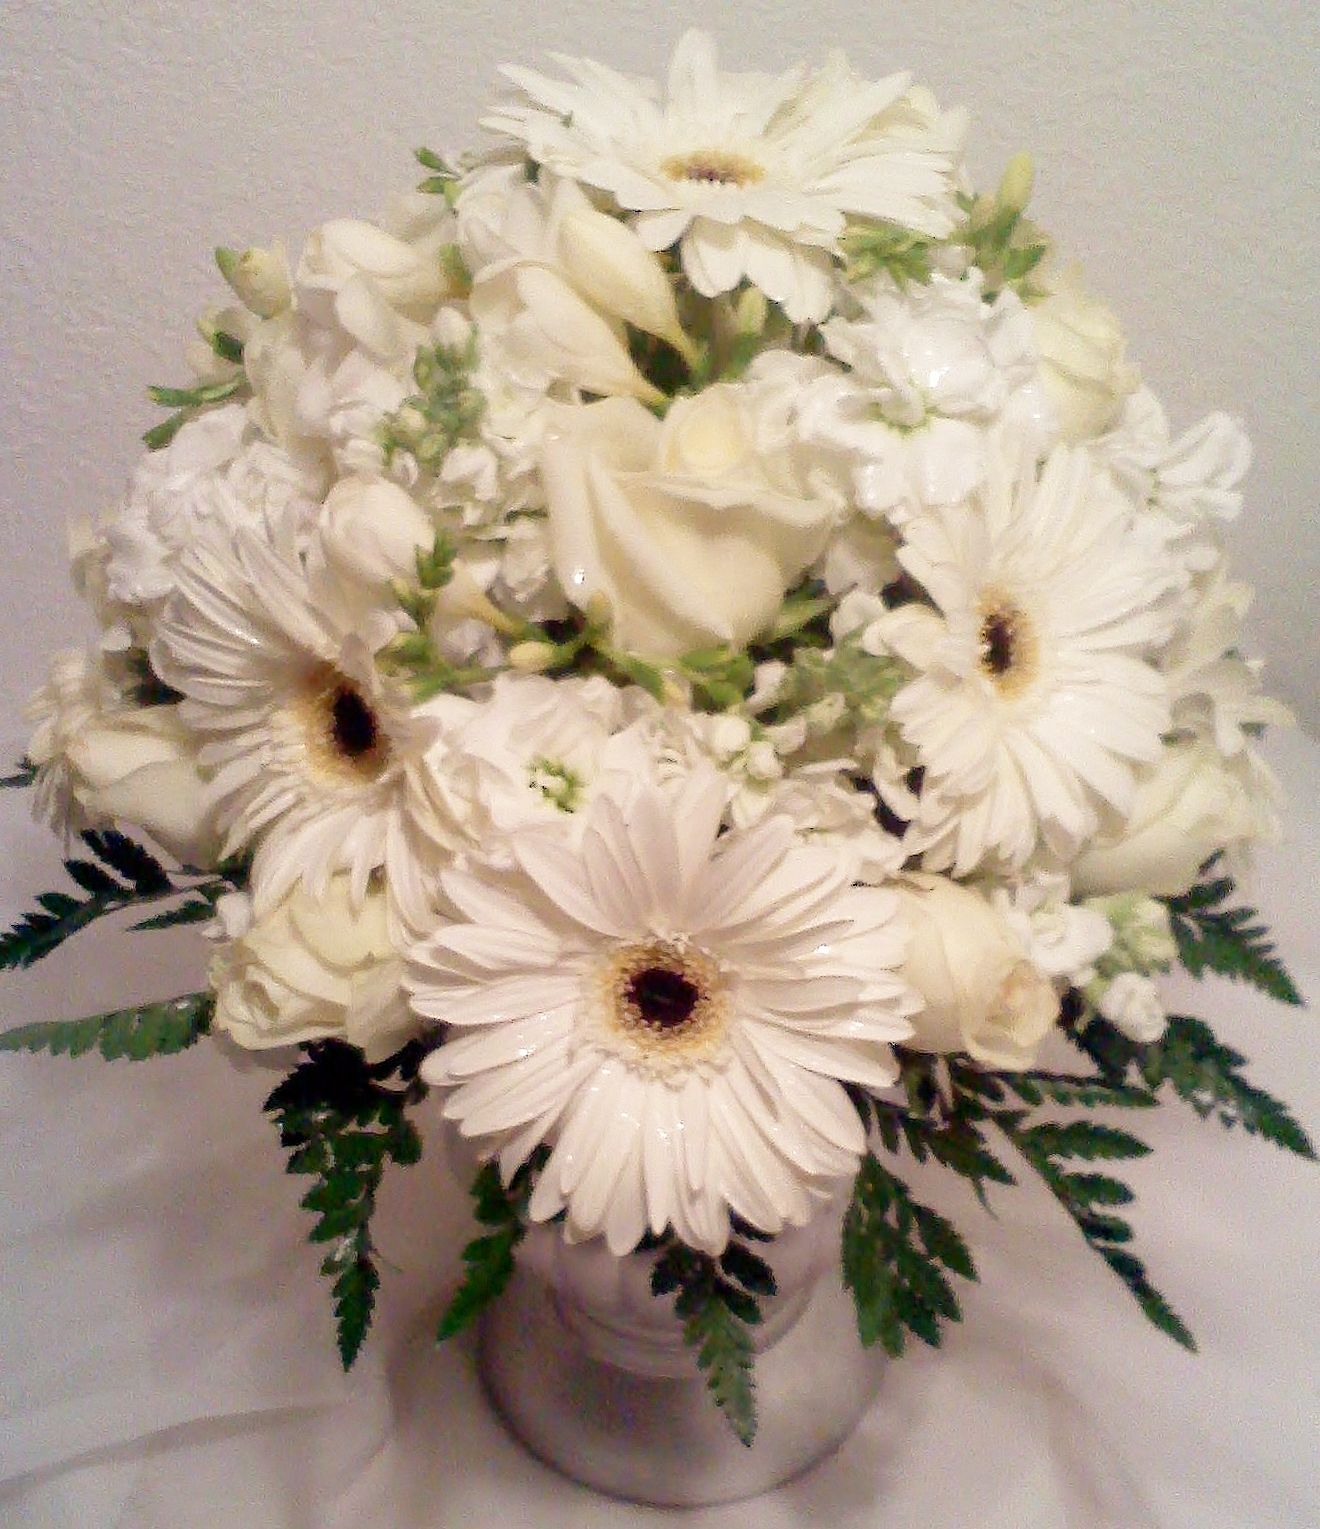 Fantasy Flowers More Gerbera Daisy Wedding Centerpiece I